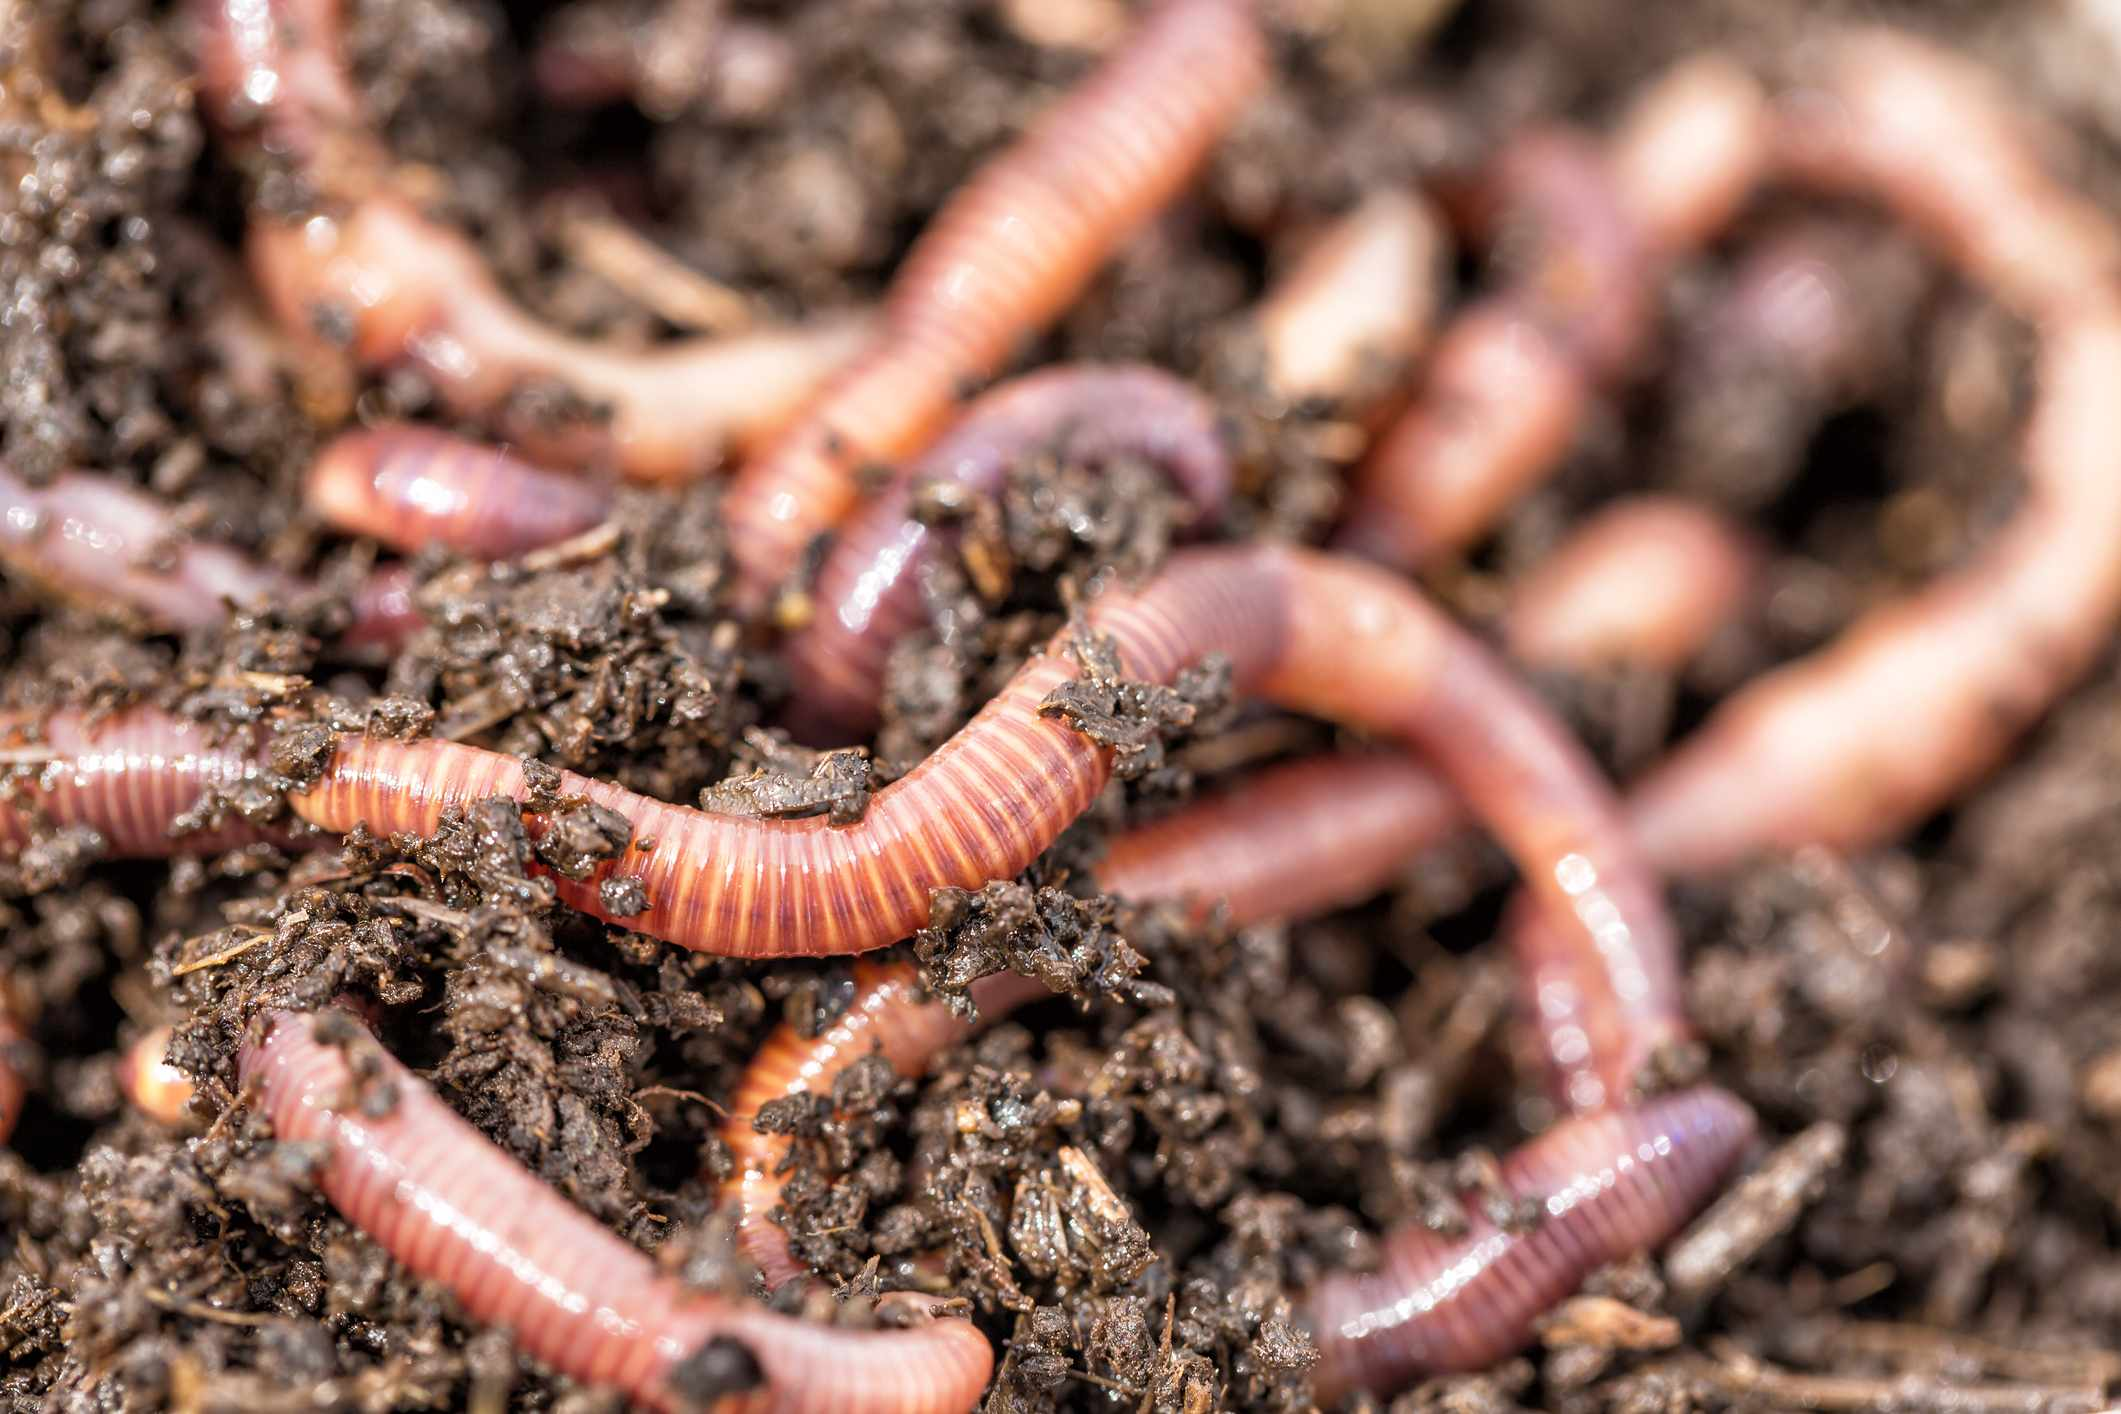 Why do earthworms surface after rain? © Getty Images